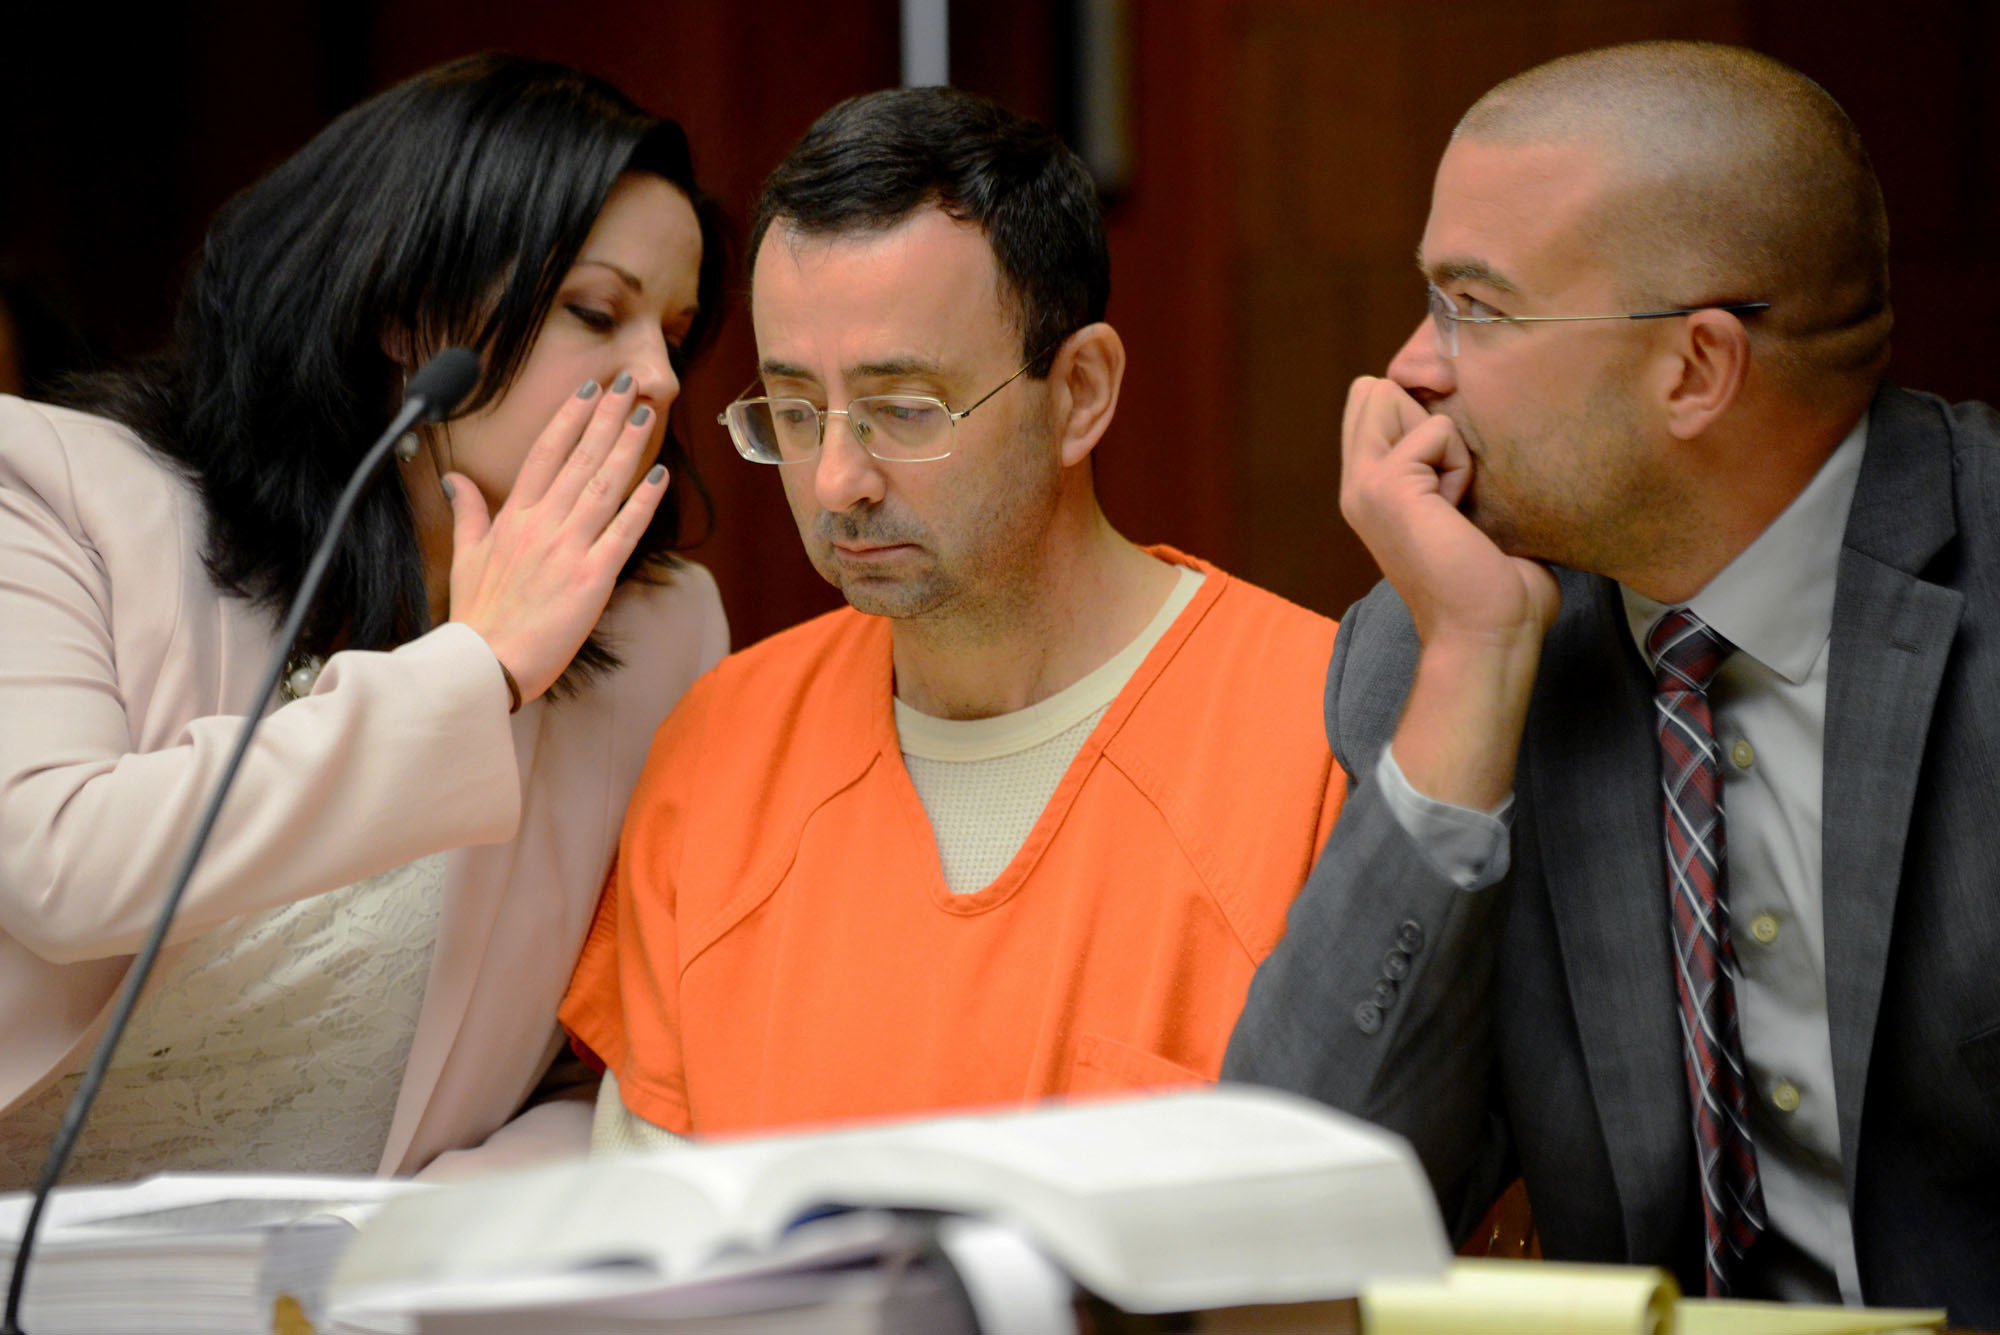 FILE - In this May 26, 2017, file photo, defense attorney Shannon Smith talks to her client, Dr. Larry Nassar, during the second portion of his preliminary hearing on sexual assault at the 55th District Court in Mason,Mich. USA Gymnastics needs to undergo